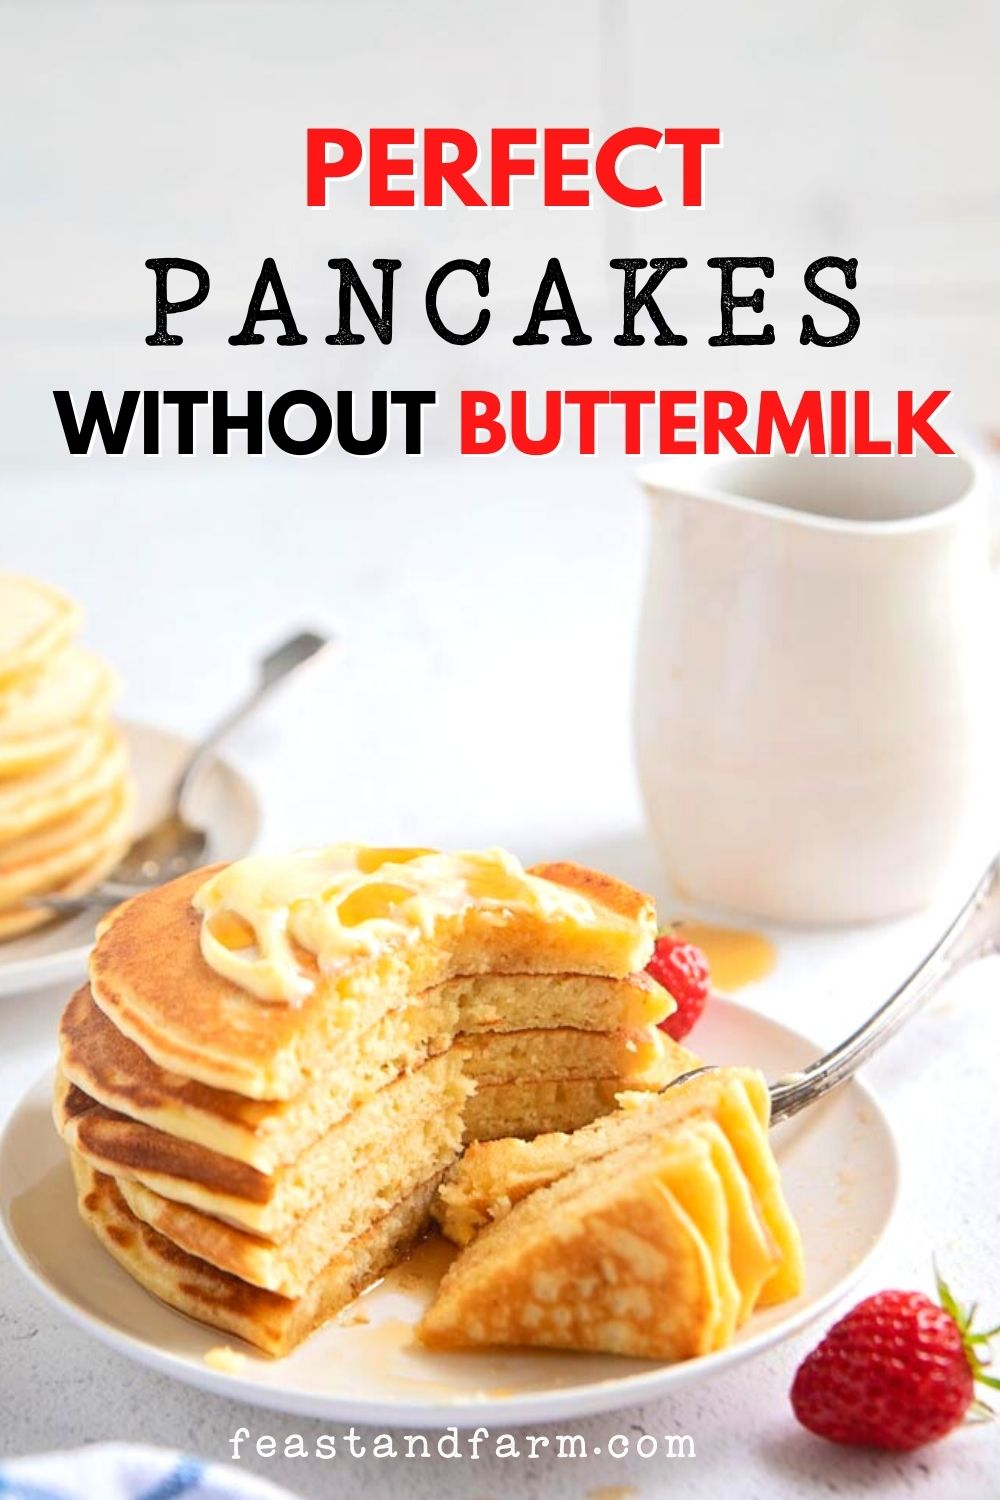 pancakes without buttermilk